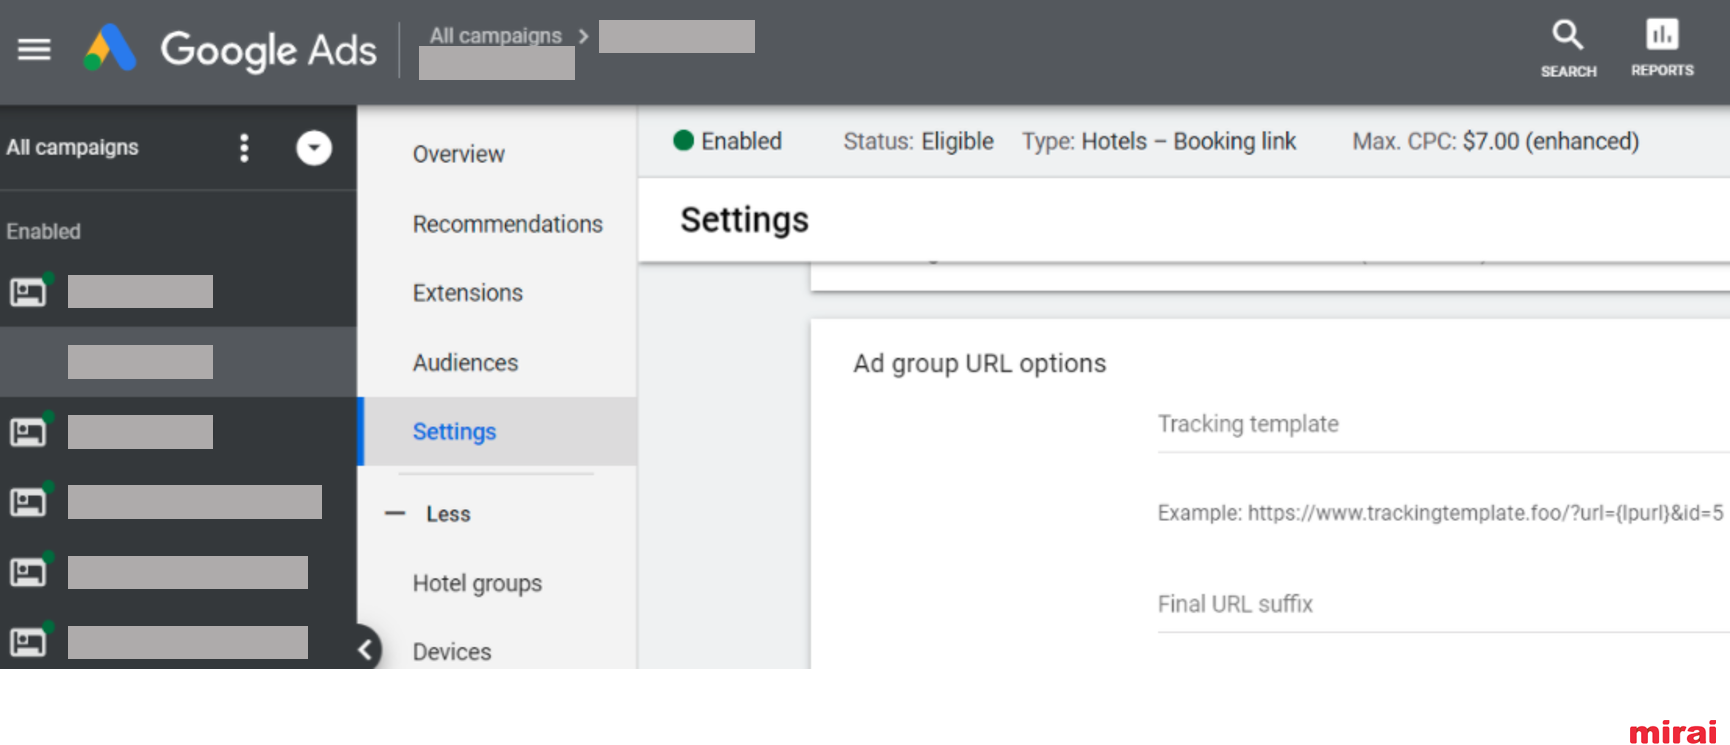 14. Monitor your performance in Google Hotel Ads - Mirai